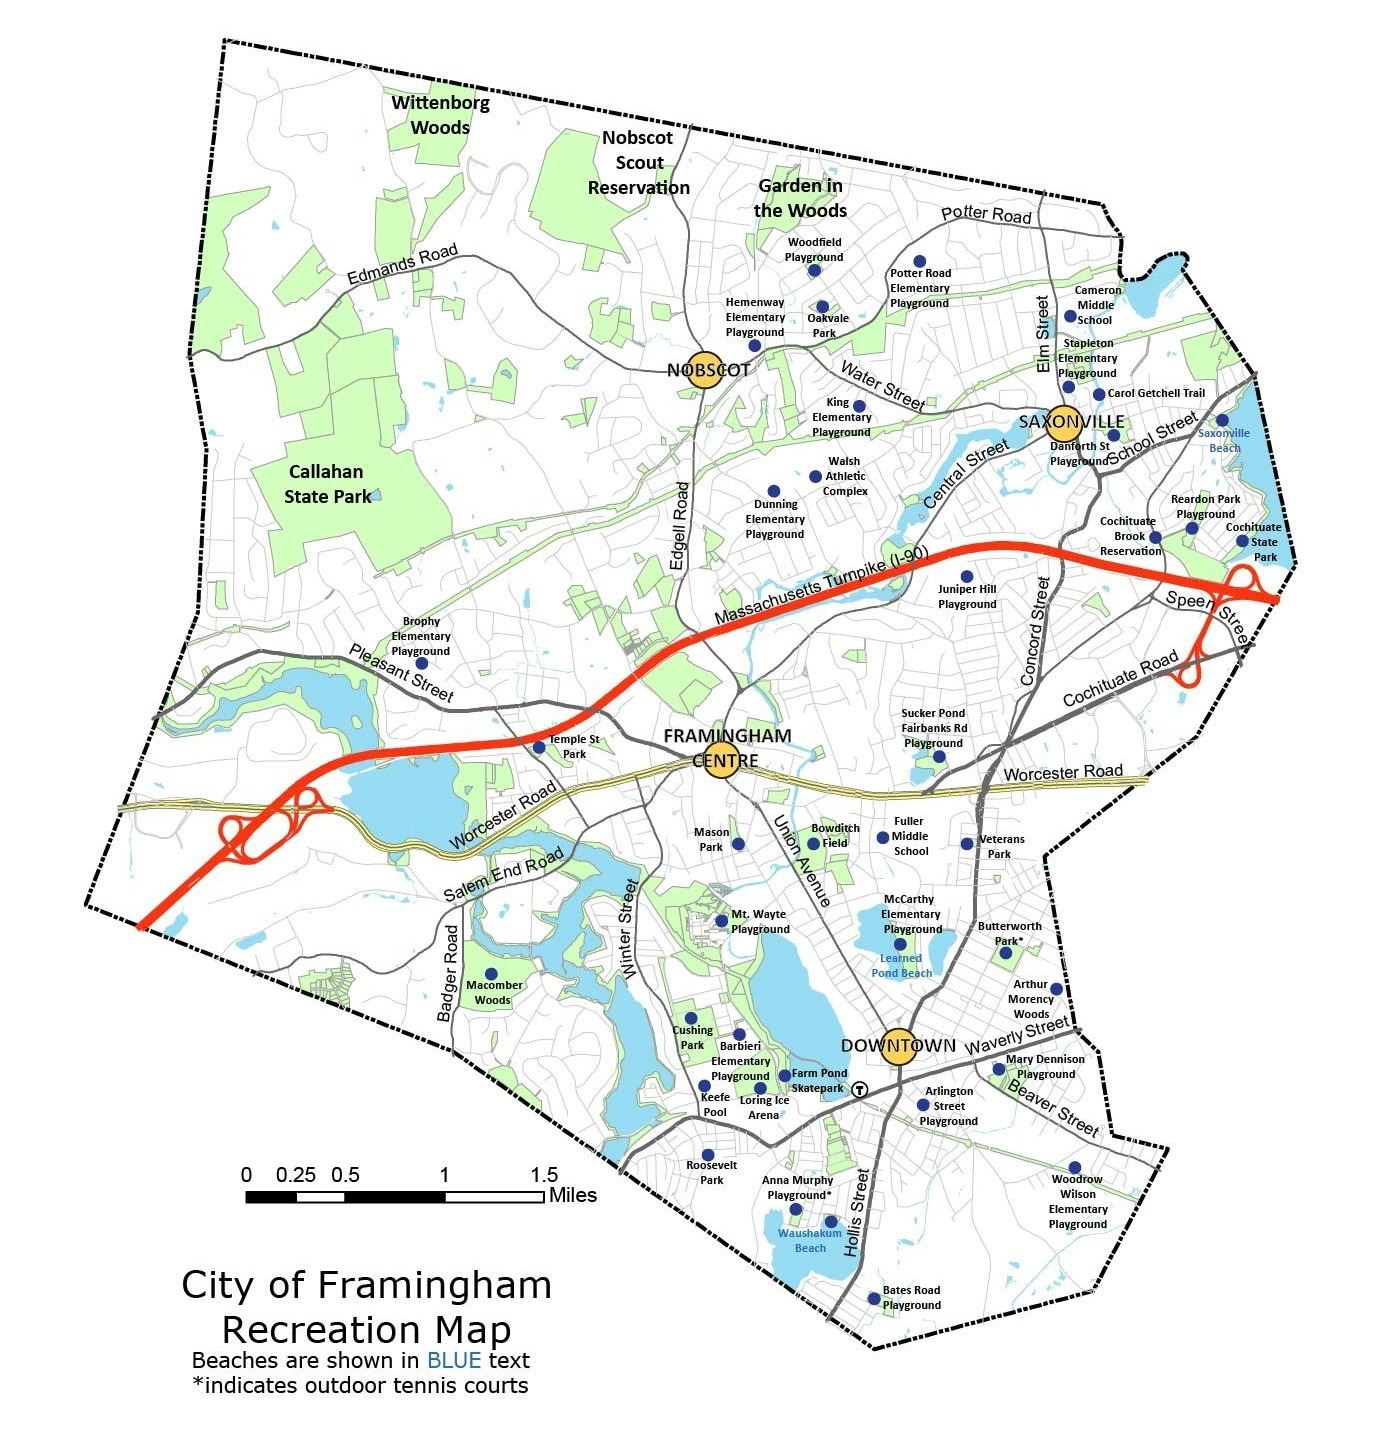 City of Framingham Recreation Map showing playgrounds around the city